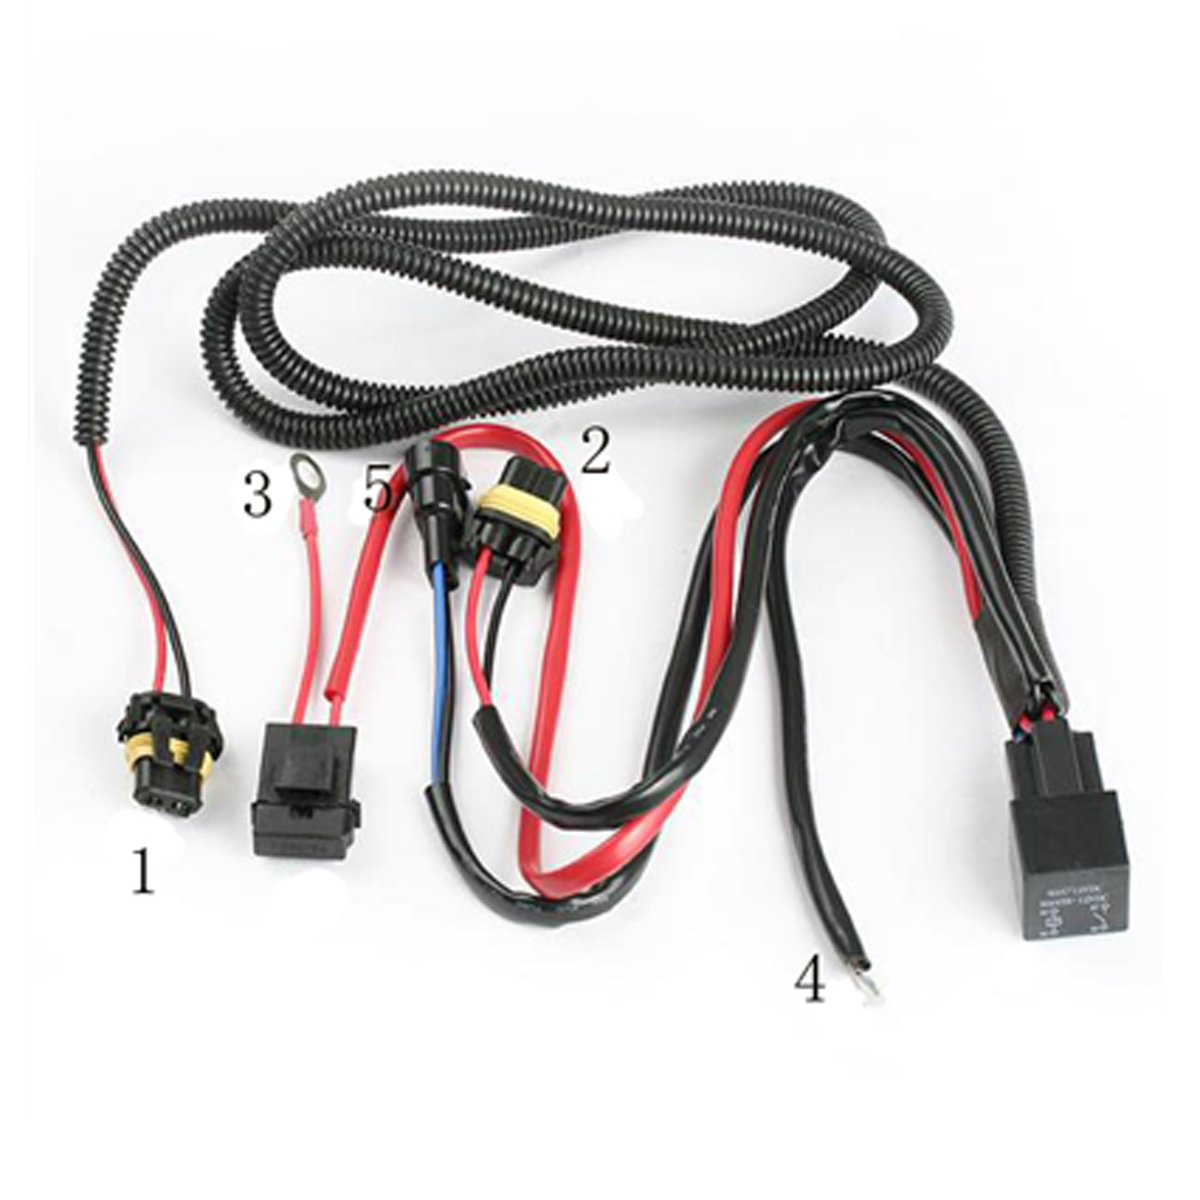 61lwCIuIleL._SL1200_ amazon com innovited universal relay wiring harness for all hid Electrical Harness Connectors at gsmx.co